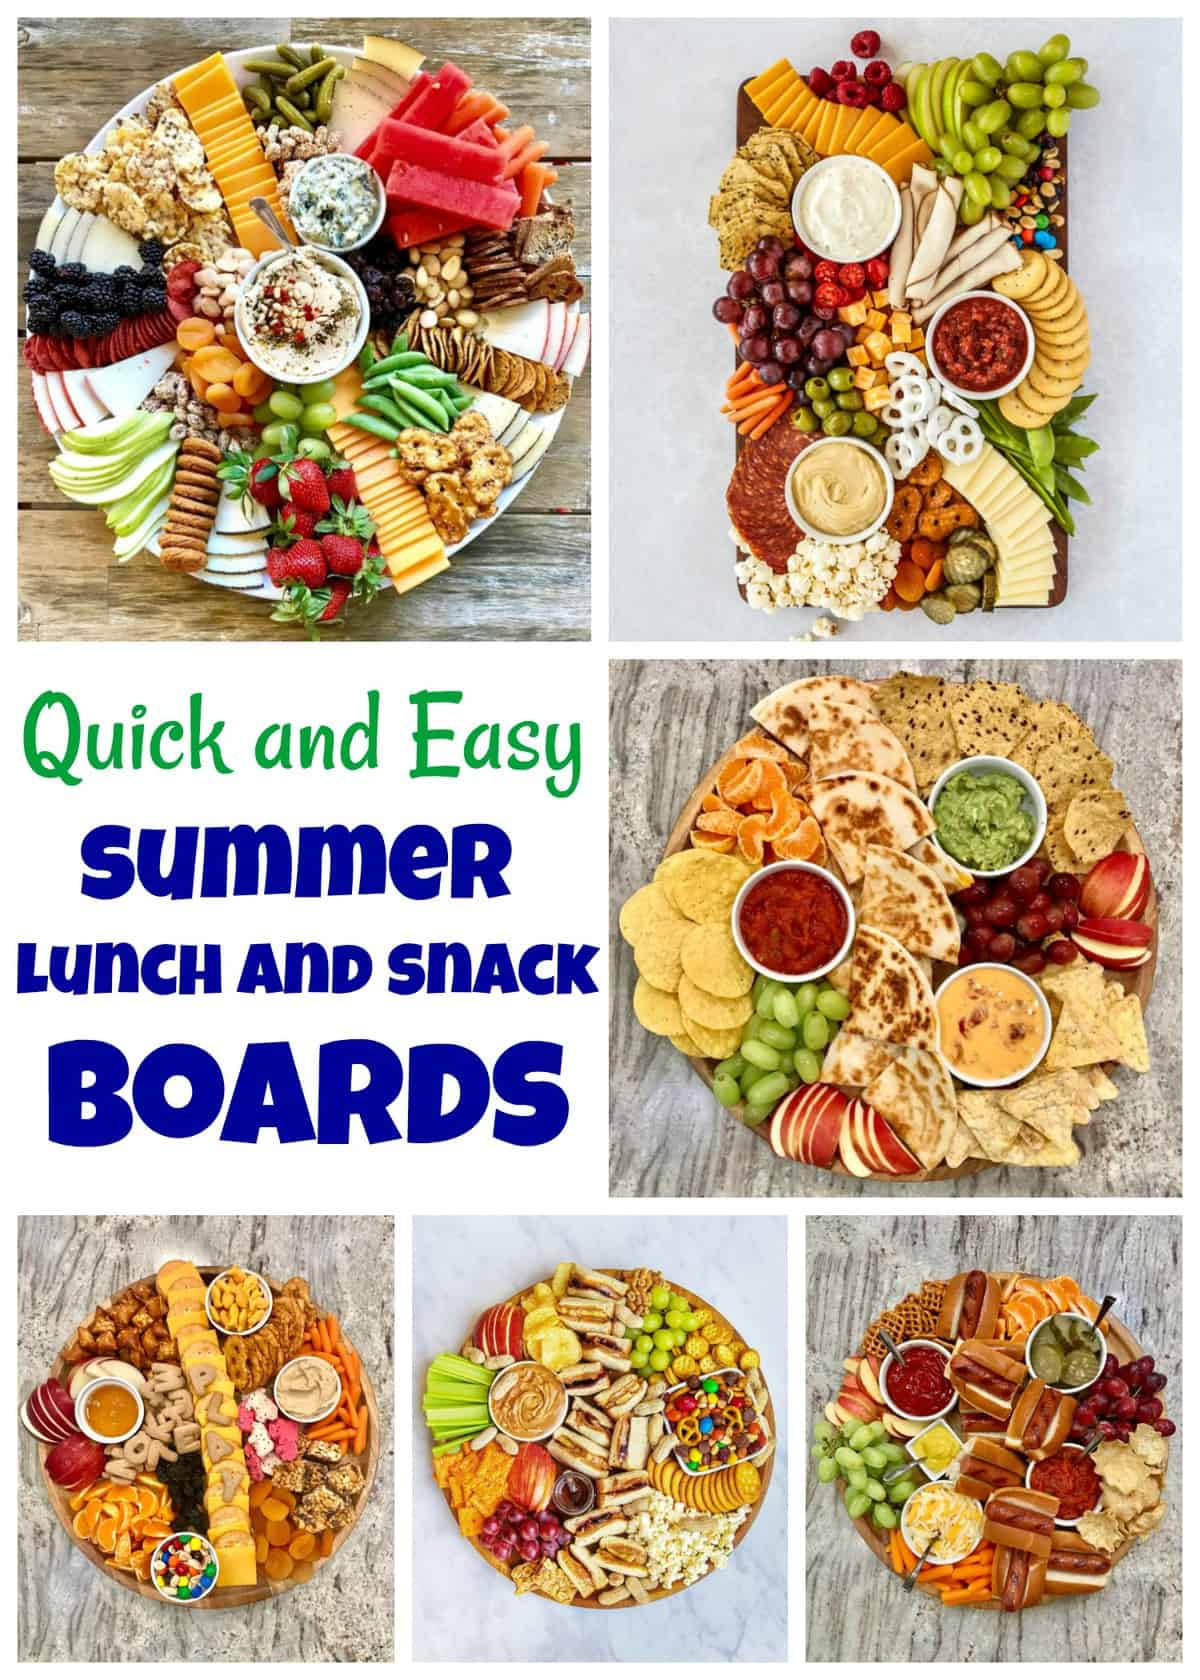 Lunch and Snack Boards by The BakerMama